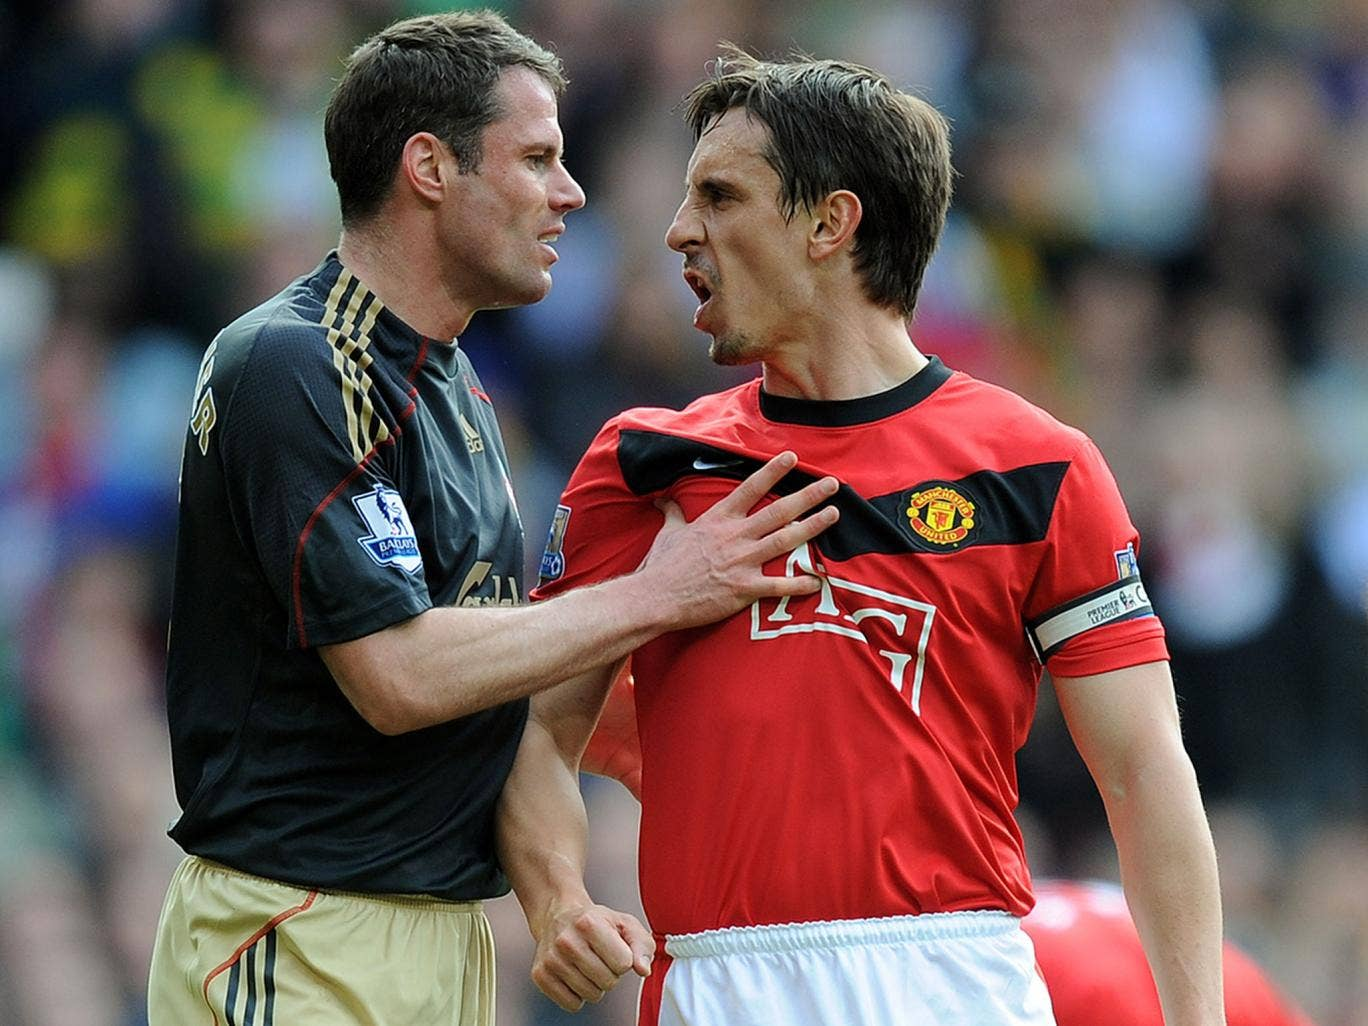 Jamie Carragher and Gary Neville during their Premier League days